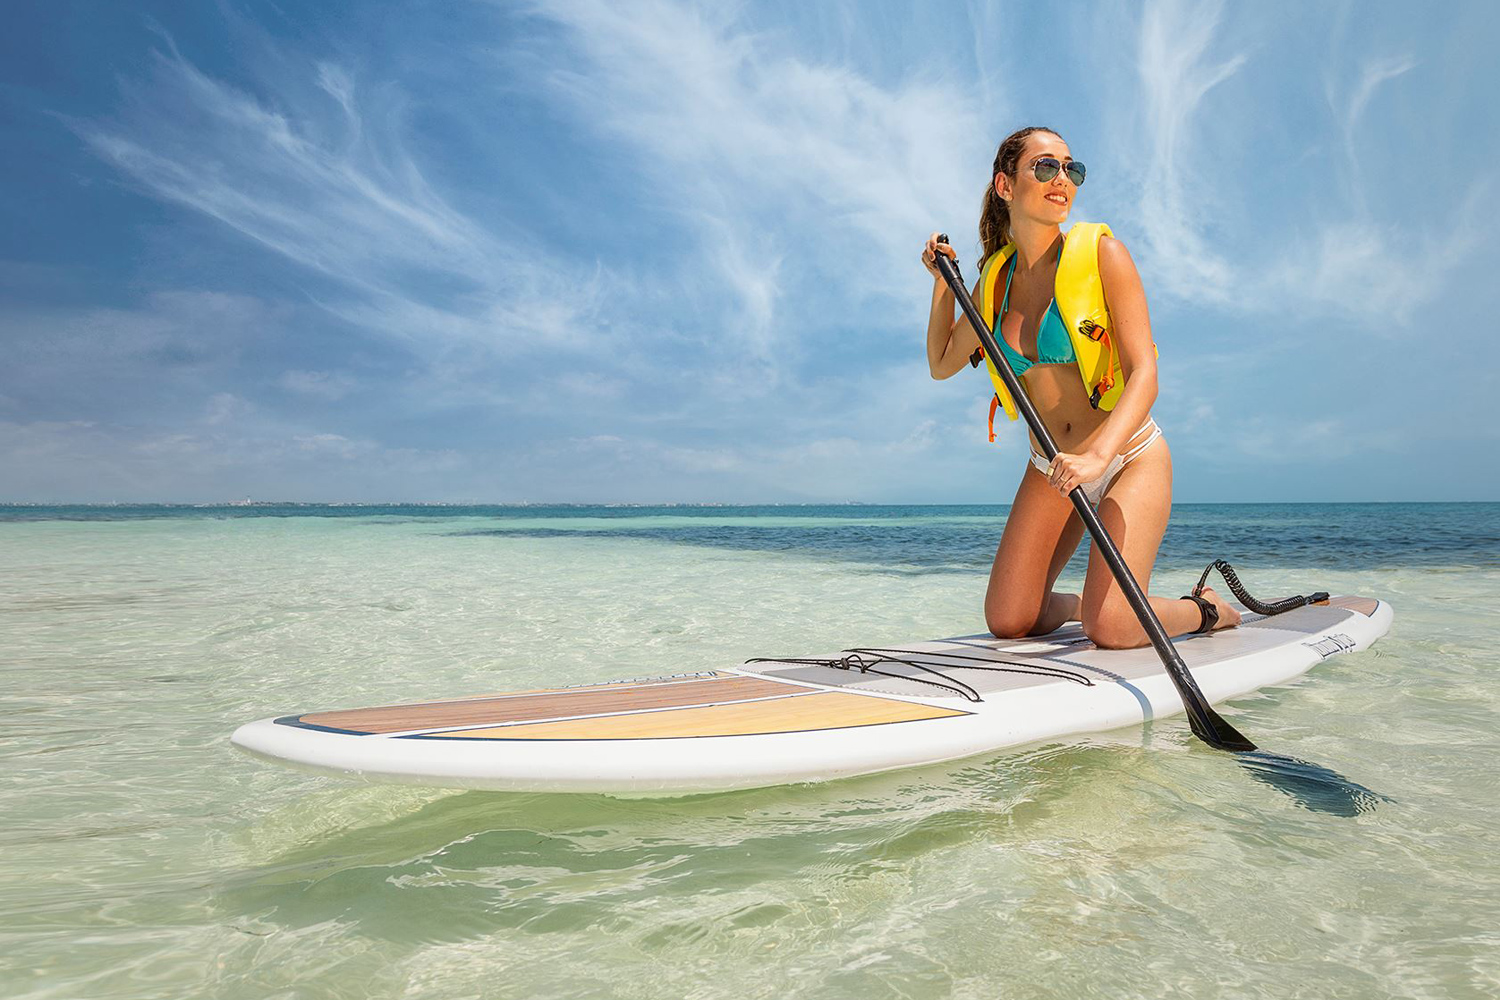 Family-Friendly Sports and Outdoors activities at Royal Resorts Cancun